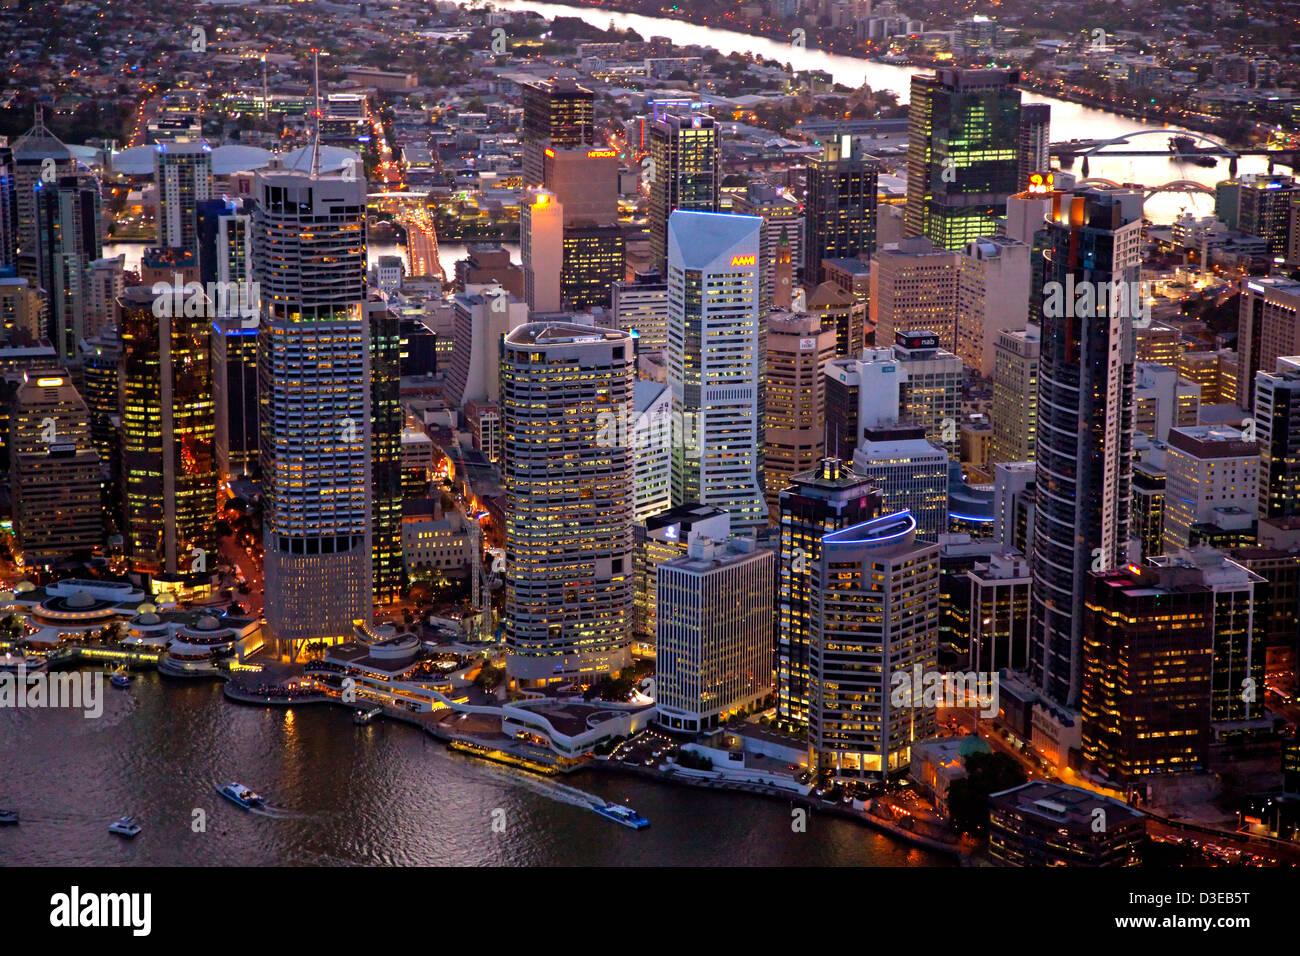 Aerial night view of Brisbane Central Business District - Stock Image